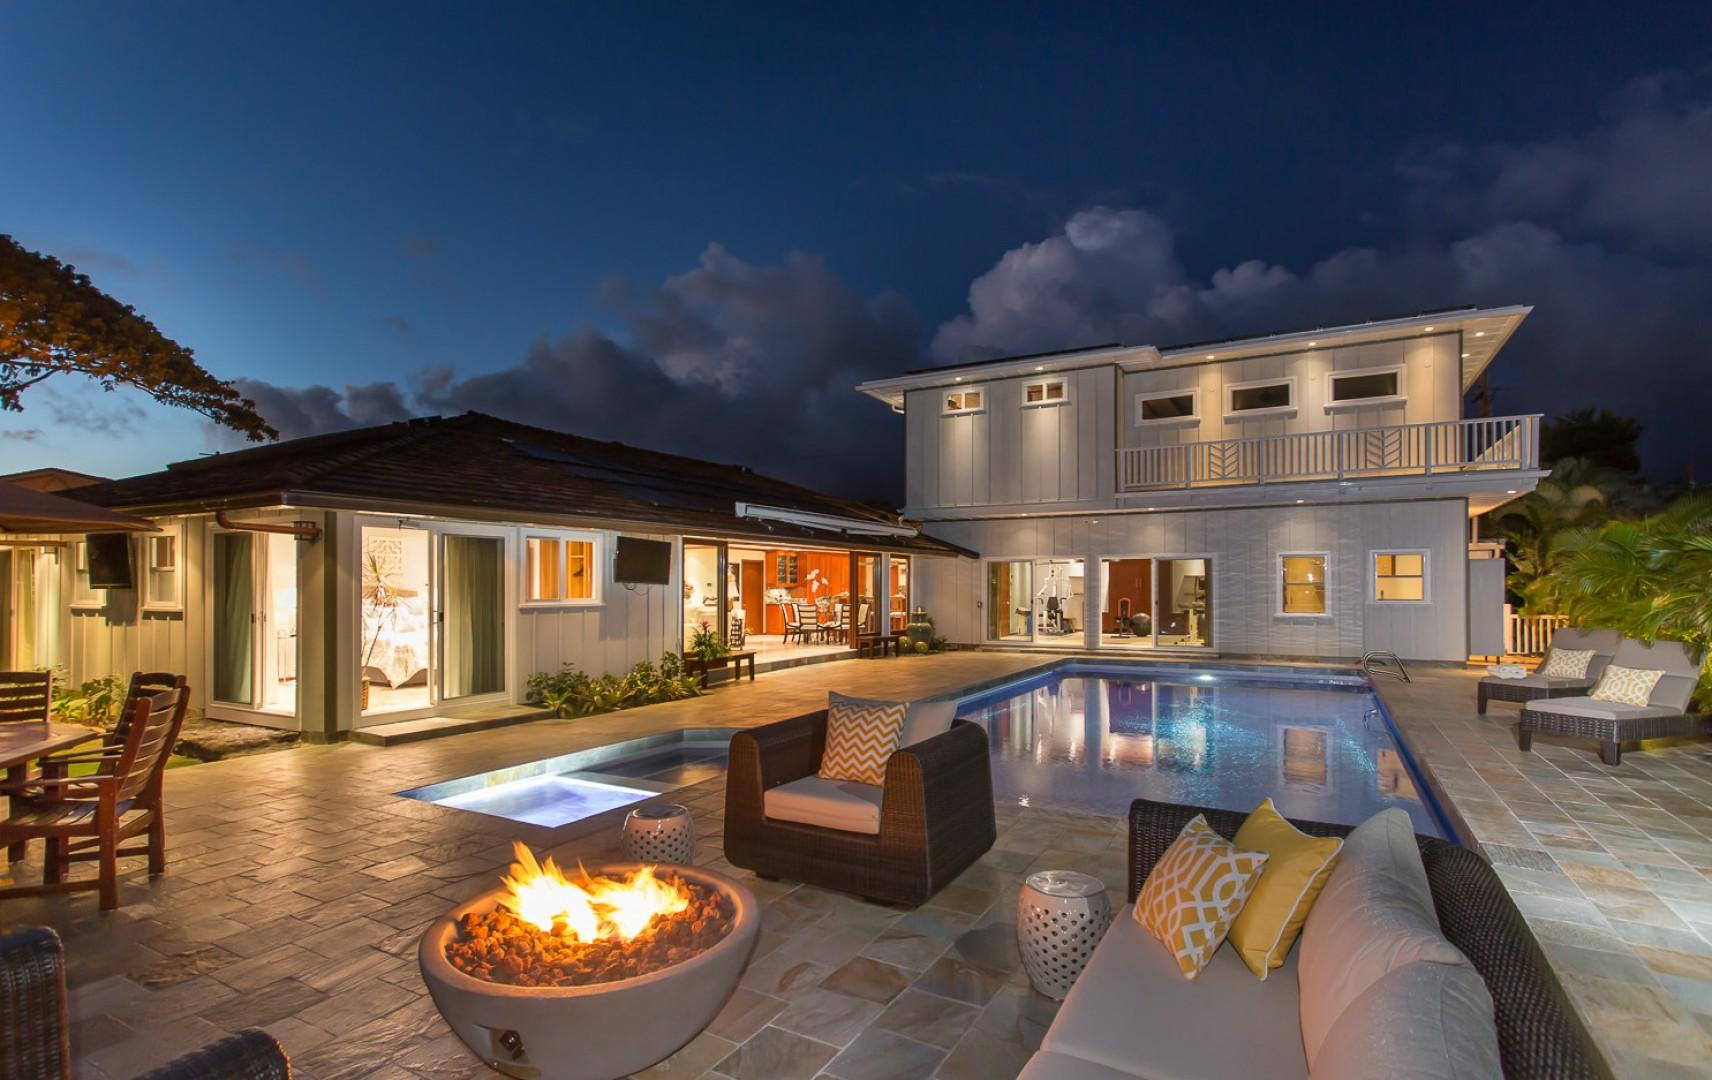 Sit back, relax, and enjoy the beautiful Kahala Alii amenities, including a barbecue grill, new saltwater pool and spa, outside living spaces, fire pit, and tiki torches!